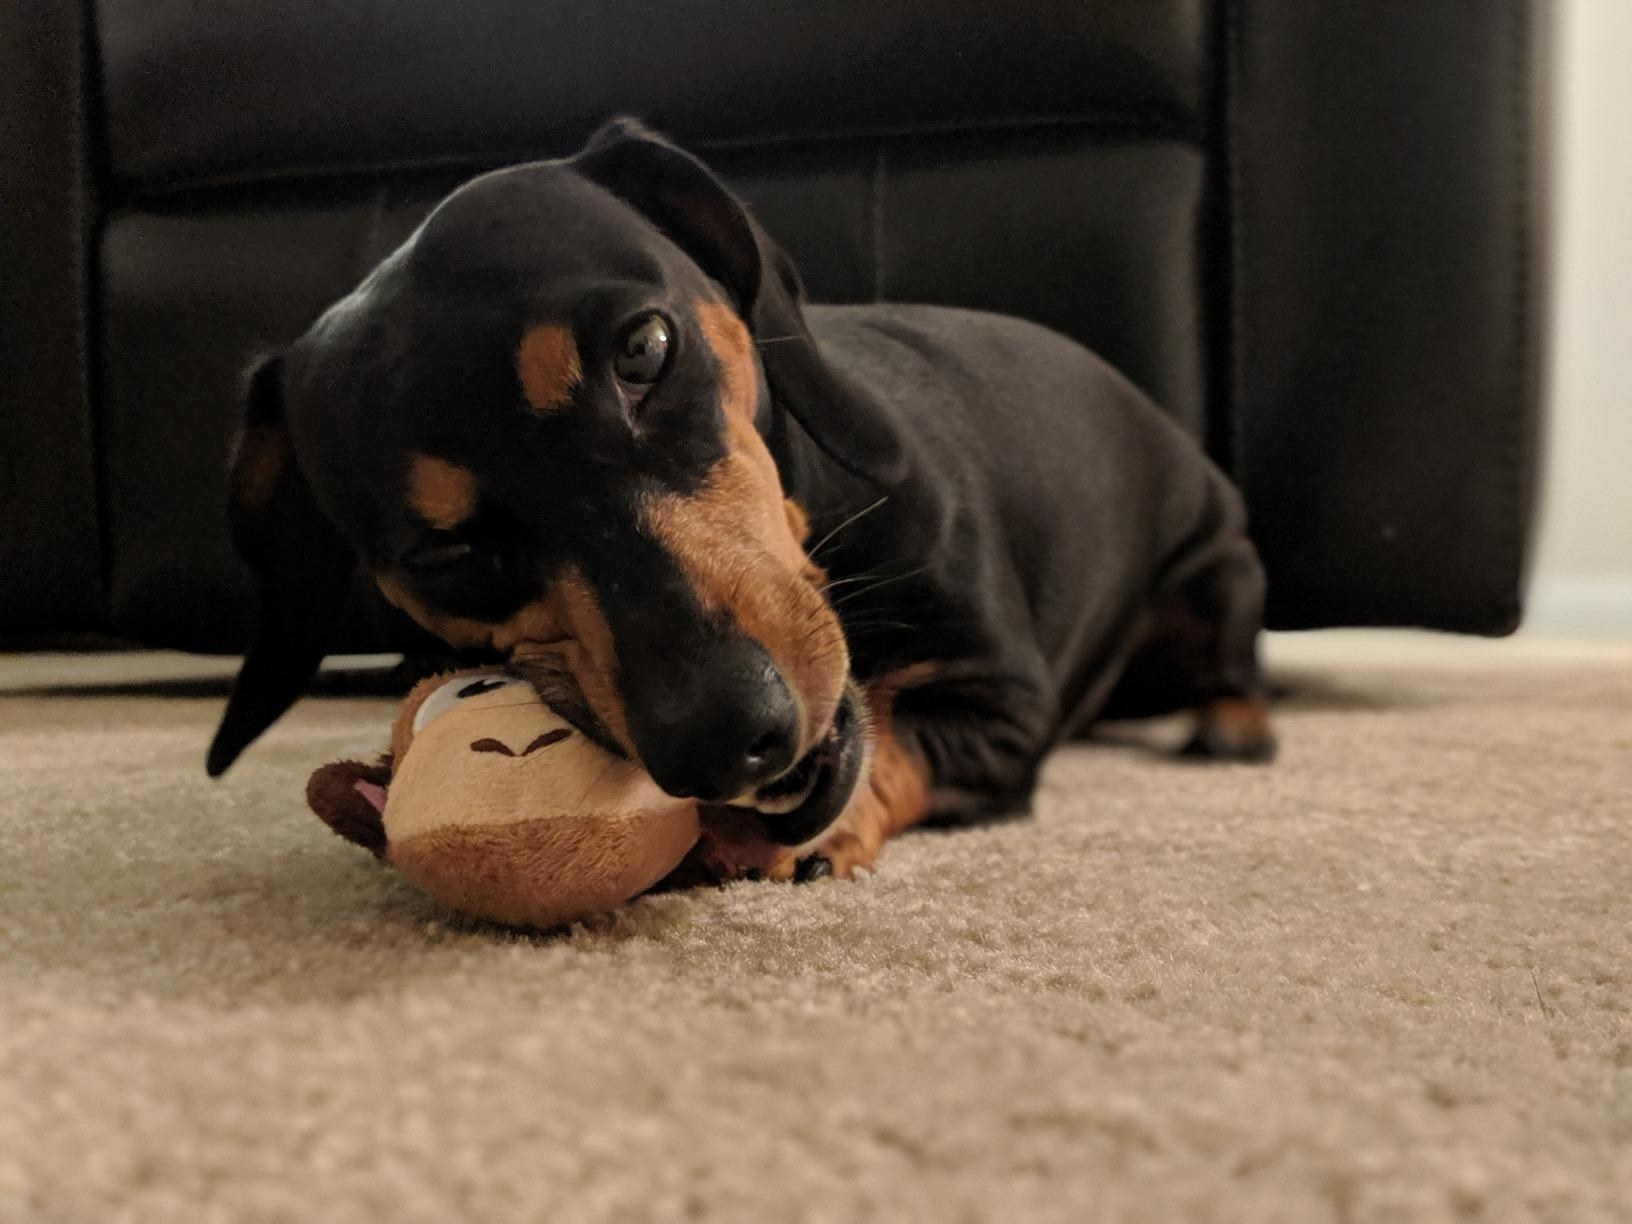 Reviewer's photo of their dog playing with the stuffed monkey